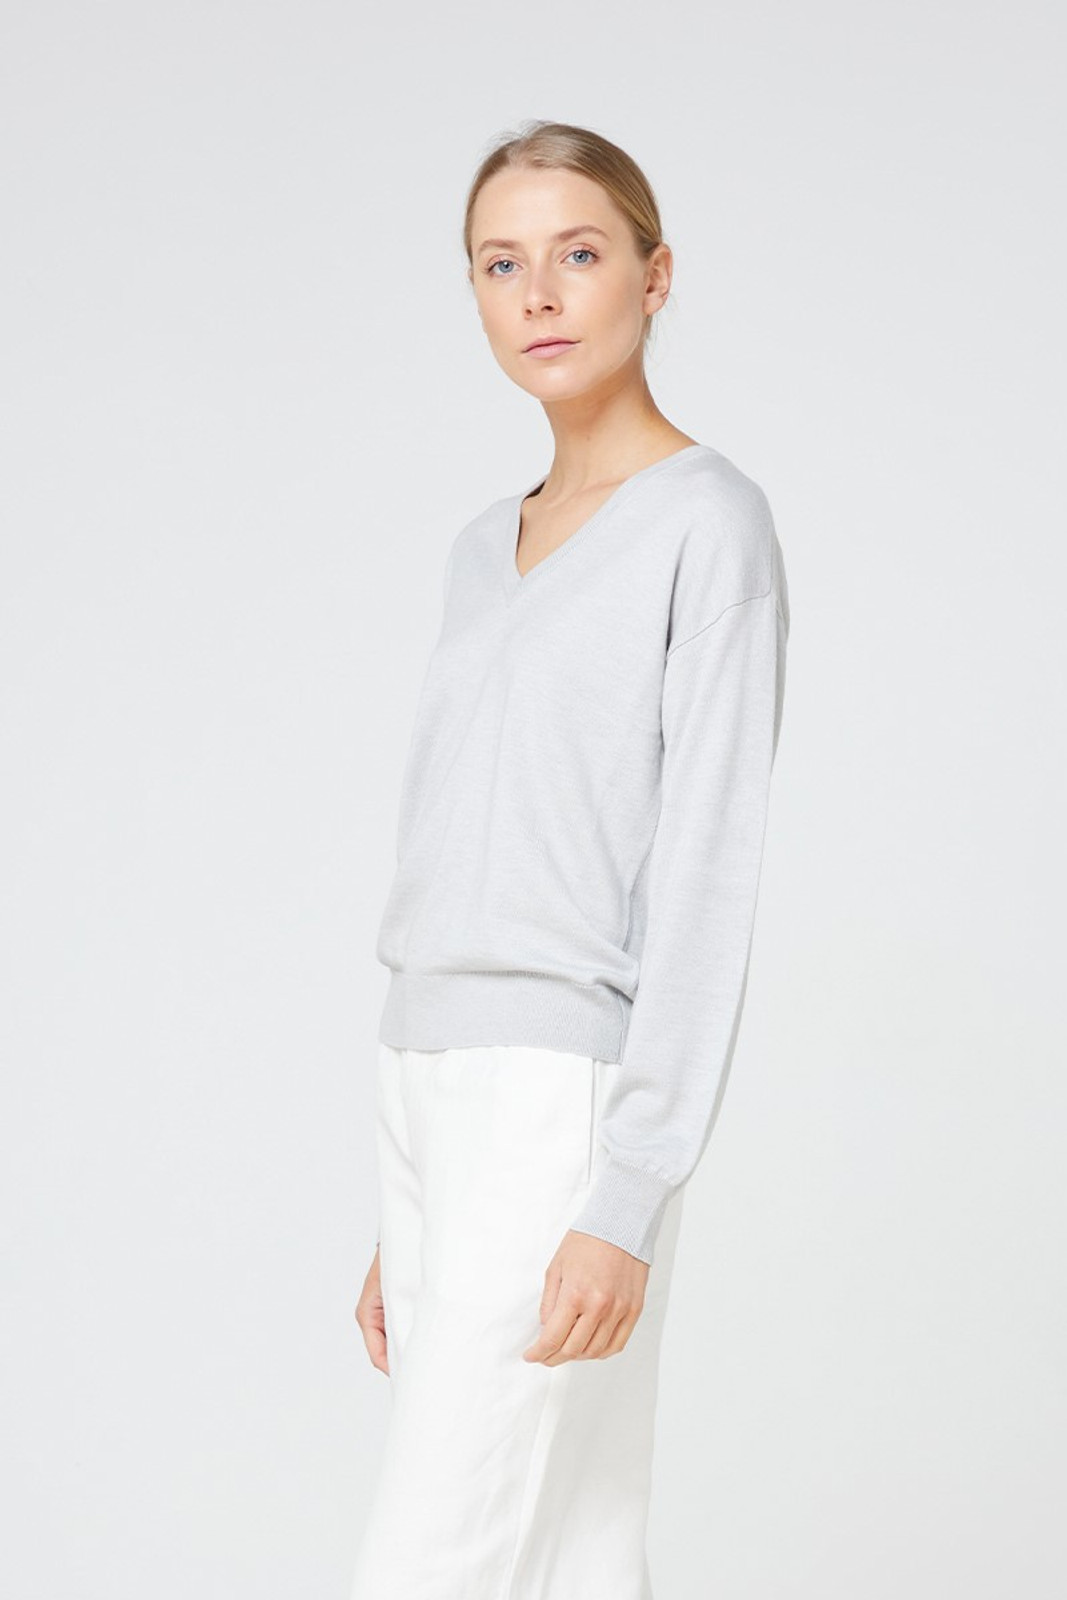 Elka Collective Isola Knit Blue  1